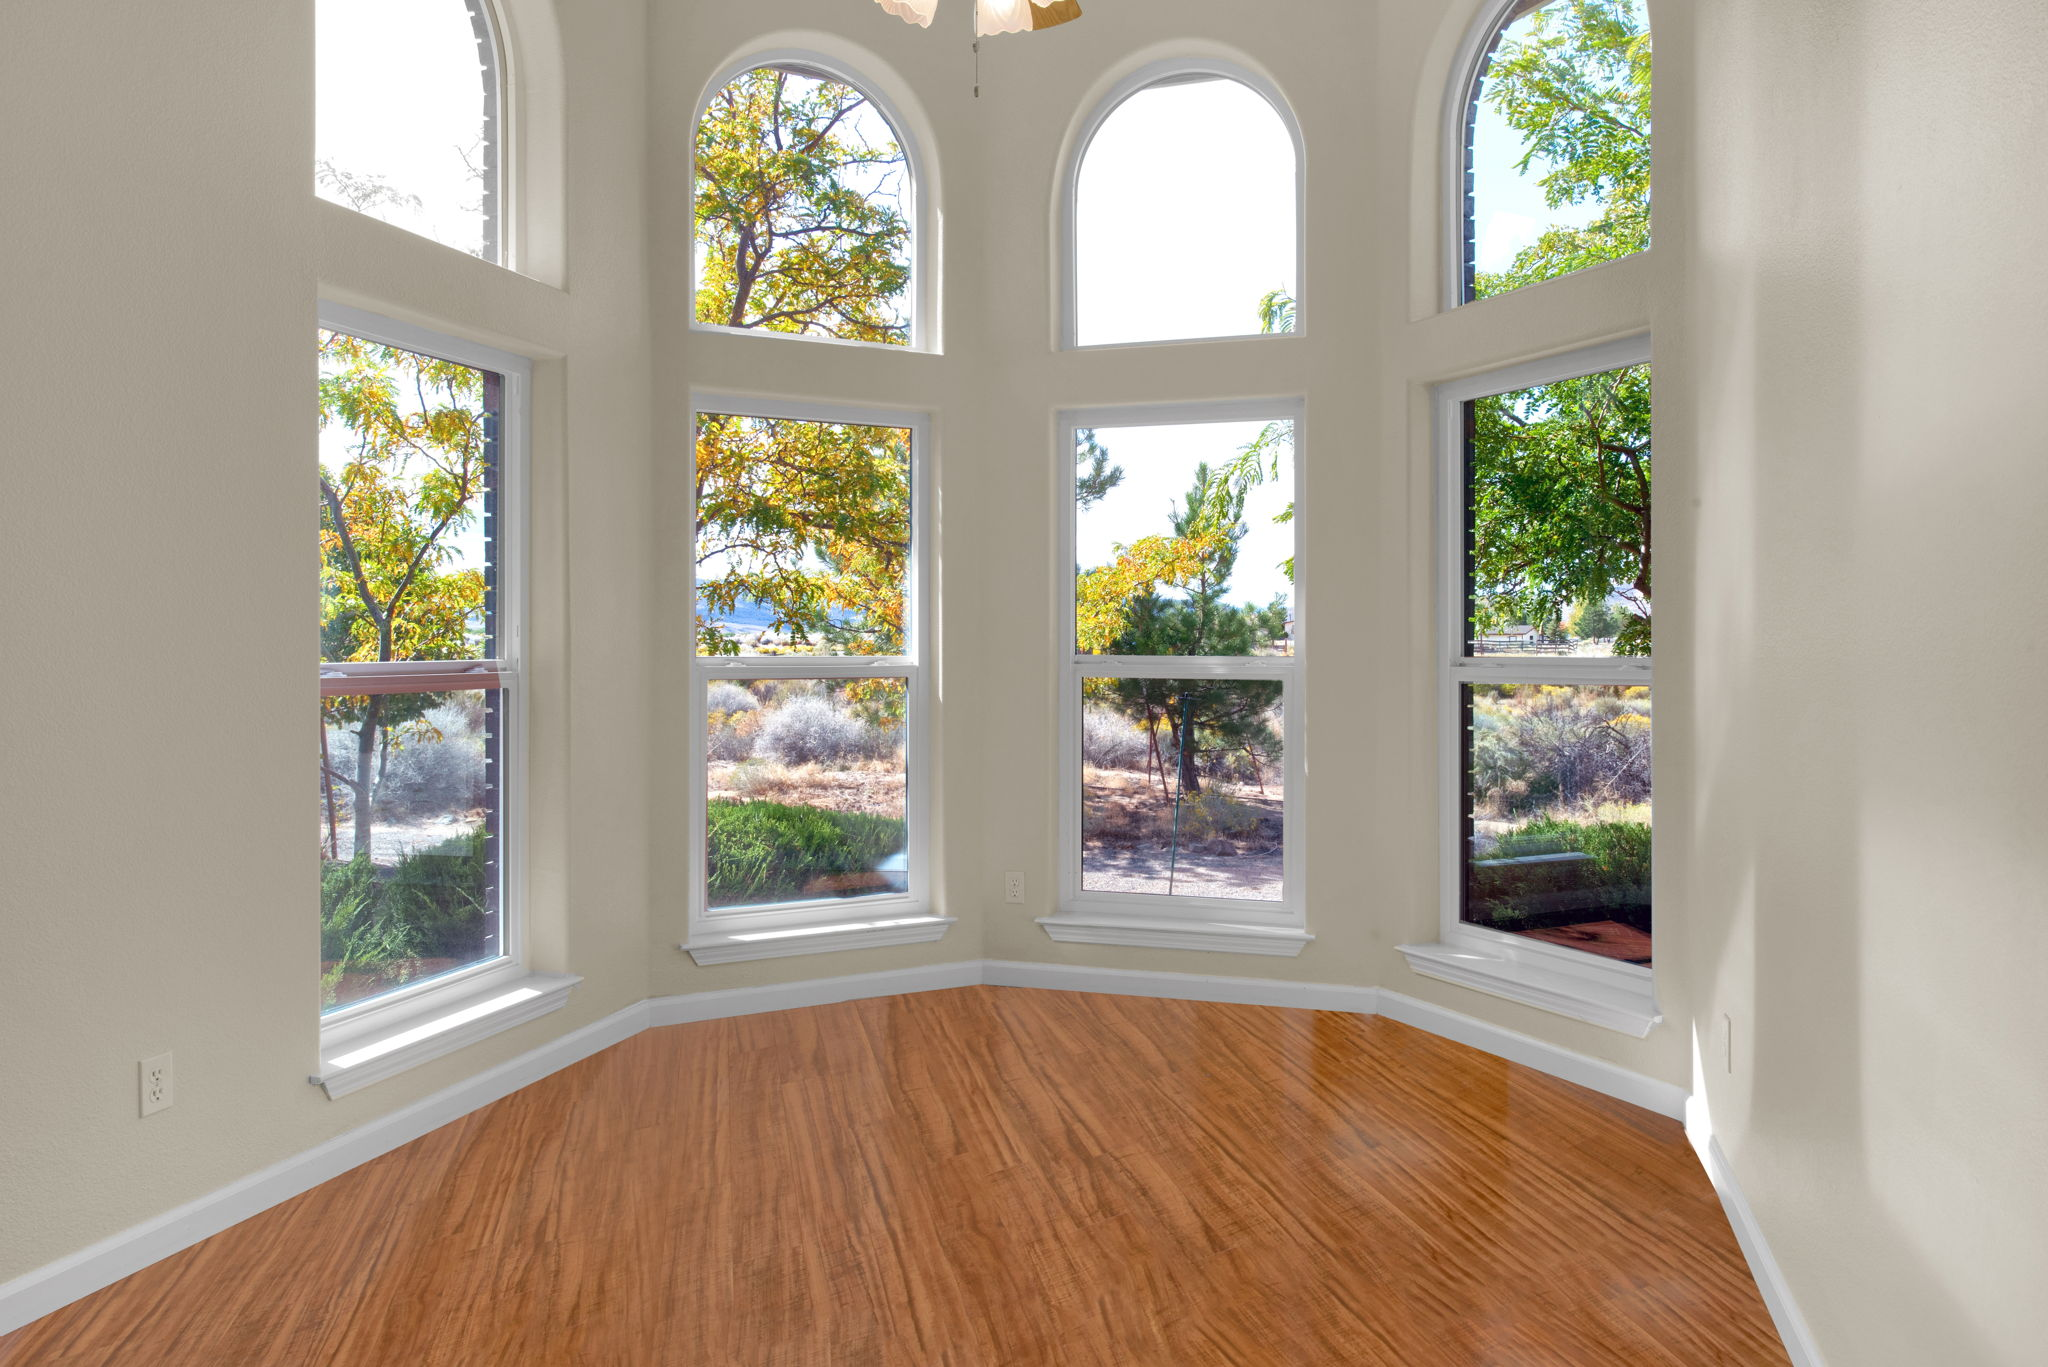 Window view of Formal Dining